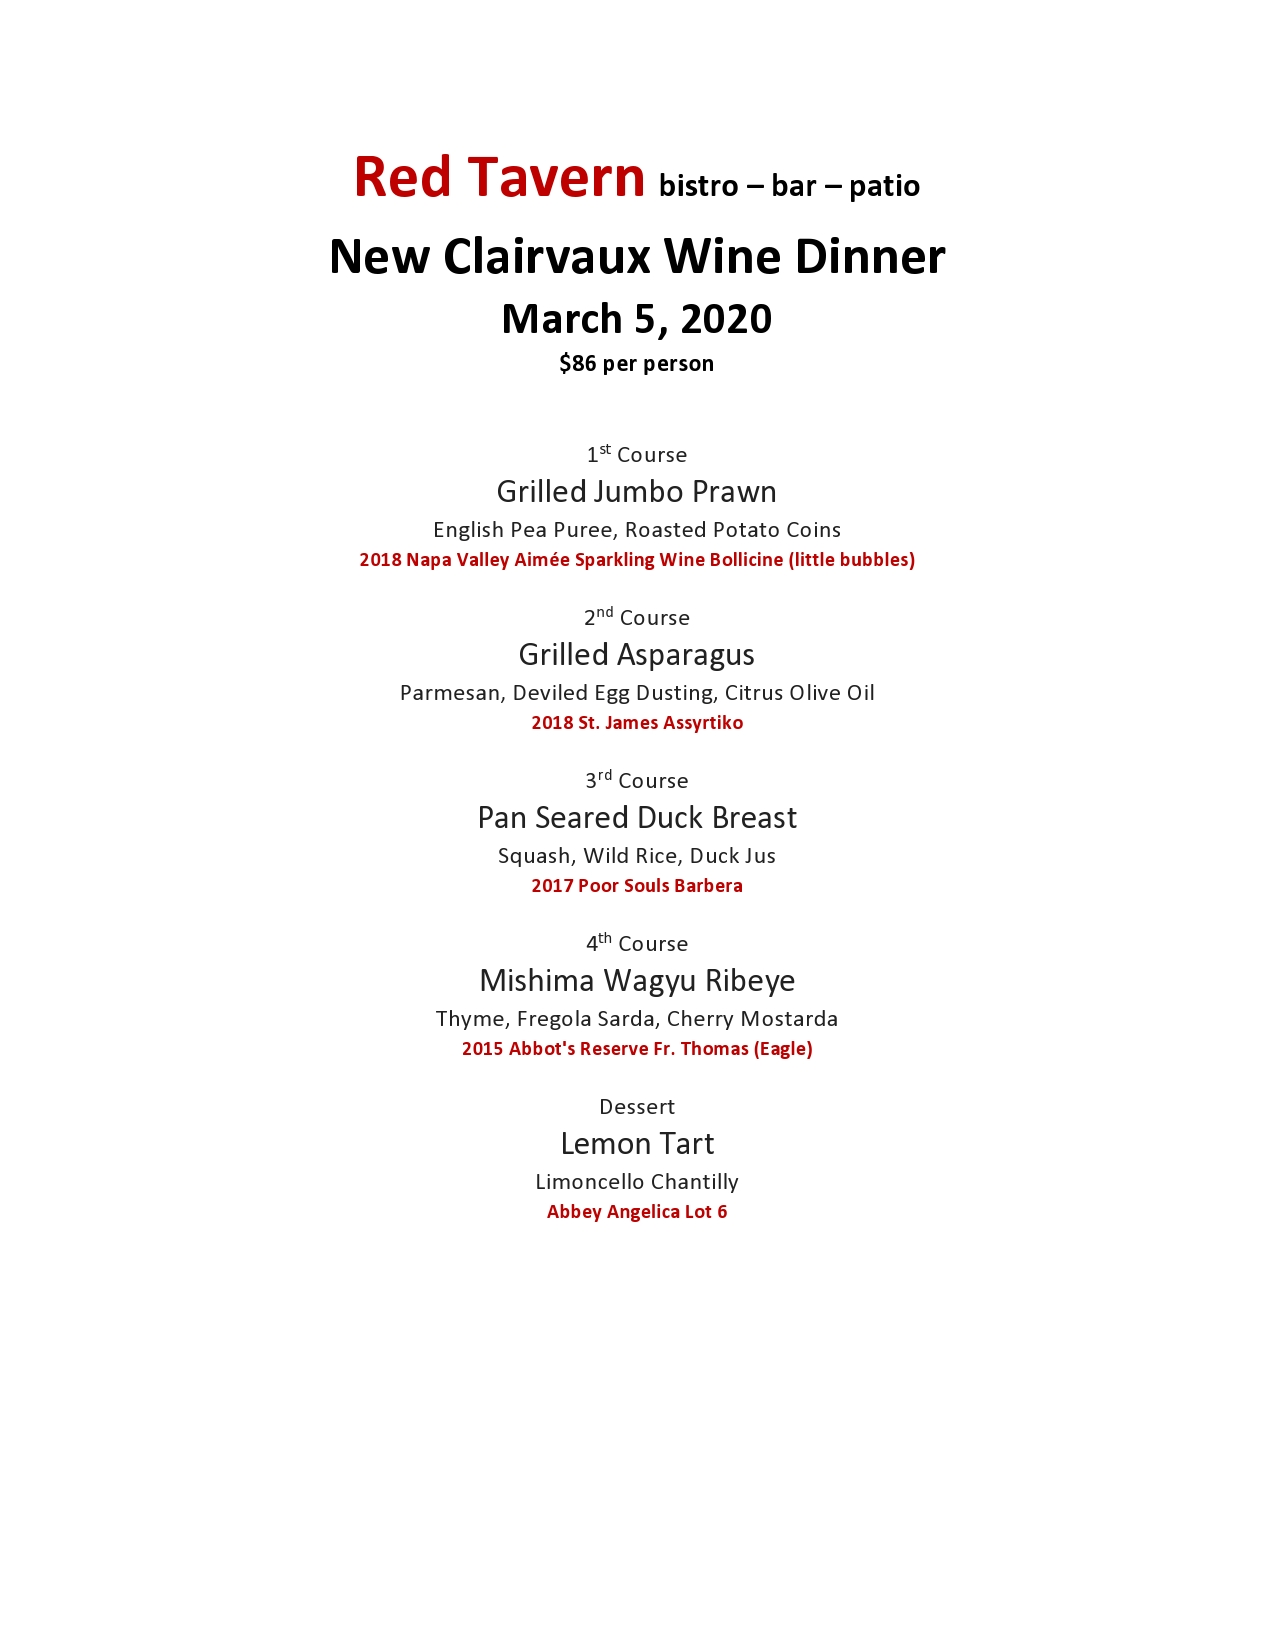 Red Tavern upcoming event: New Clairvaux Wine Maker's Dinner